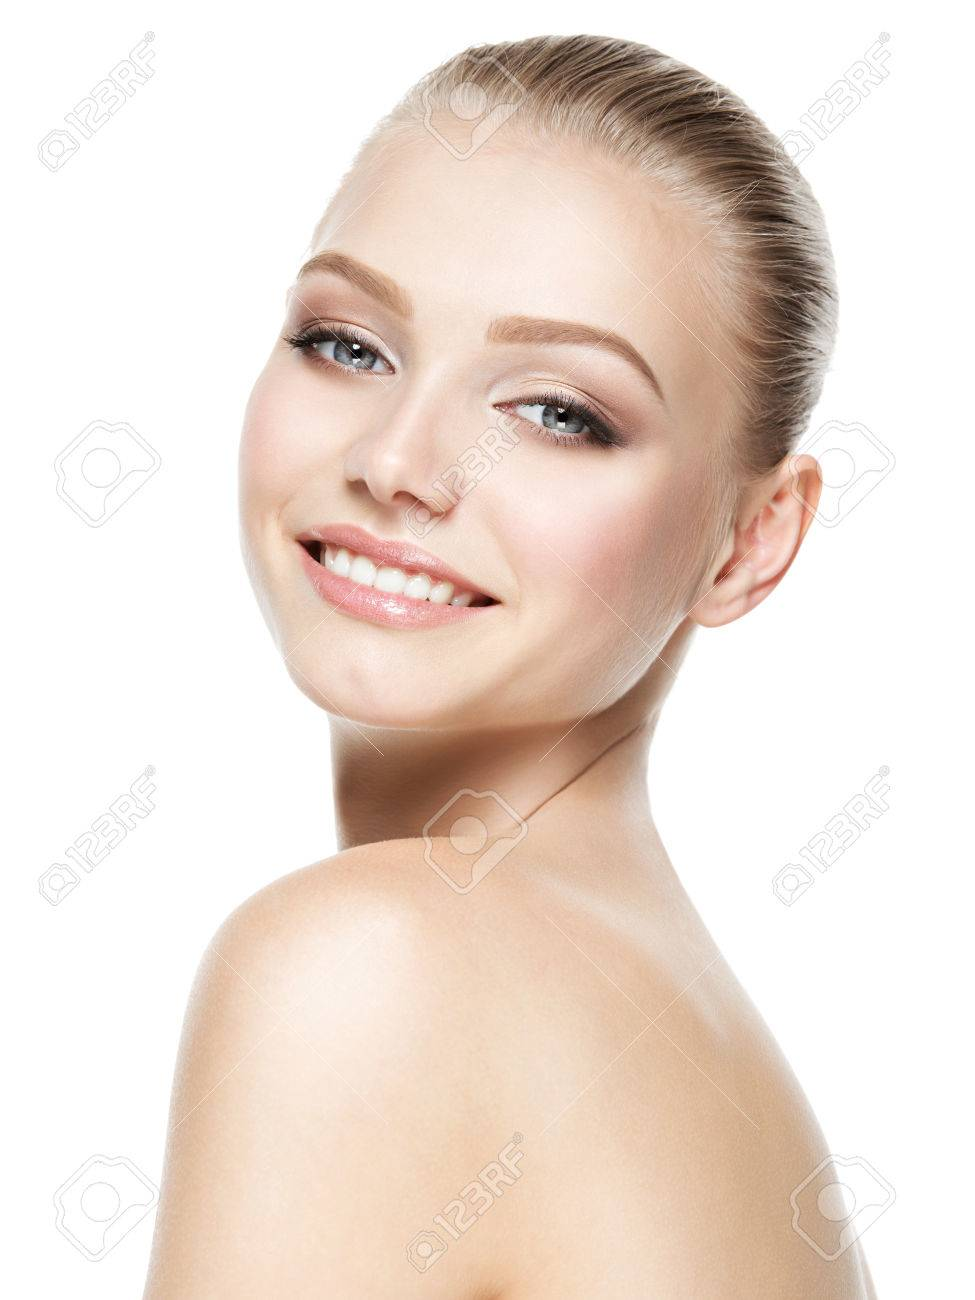 Beautiful face of young smiling woman with clean fresh skin - isolated on white Banque d'images - 63650597